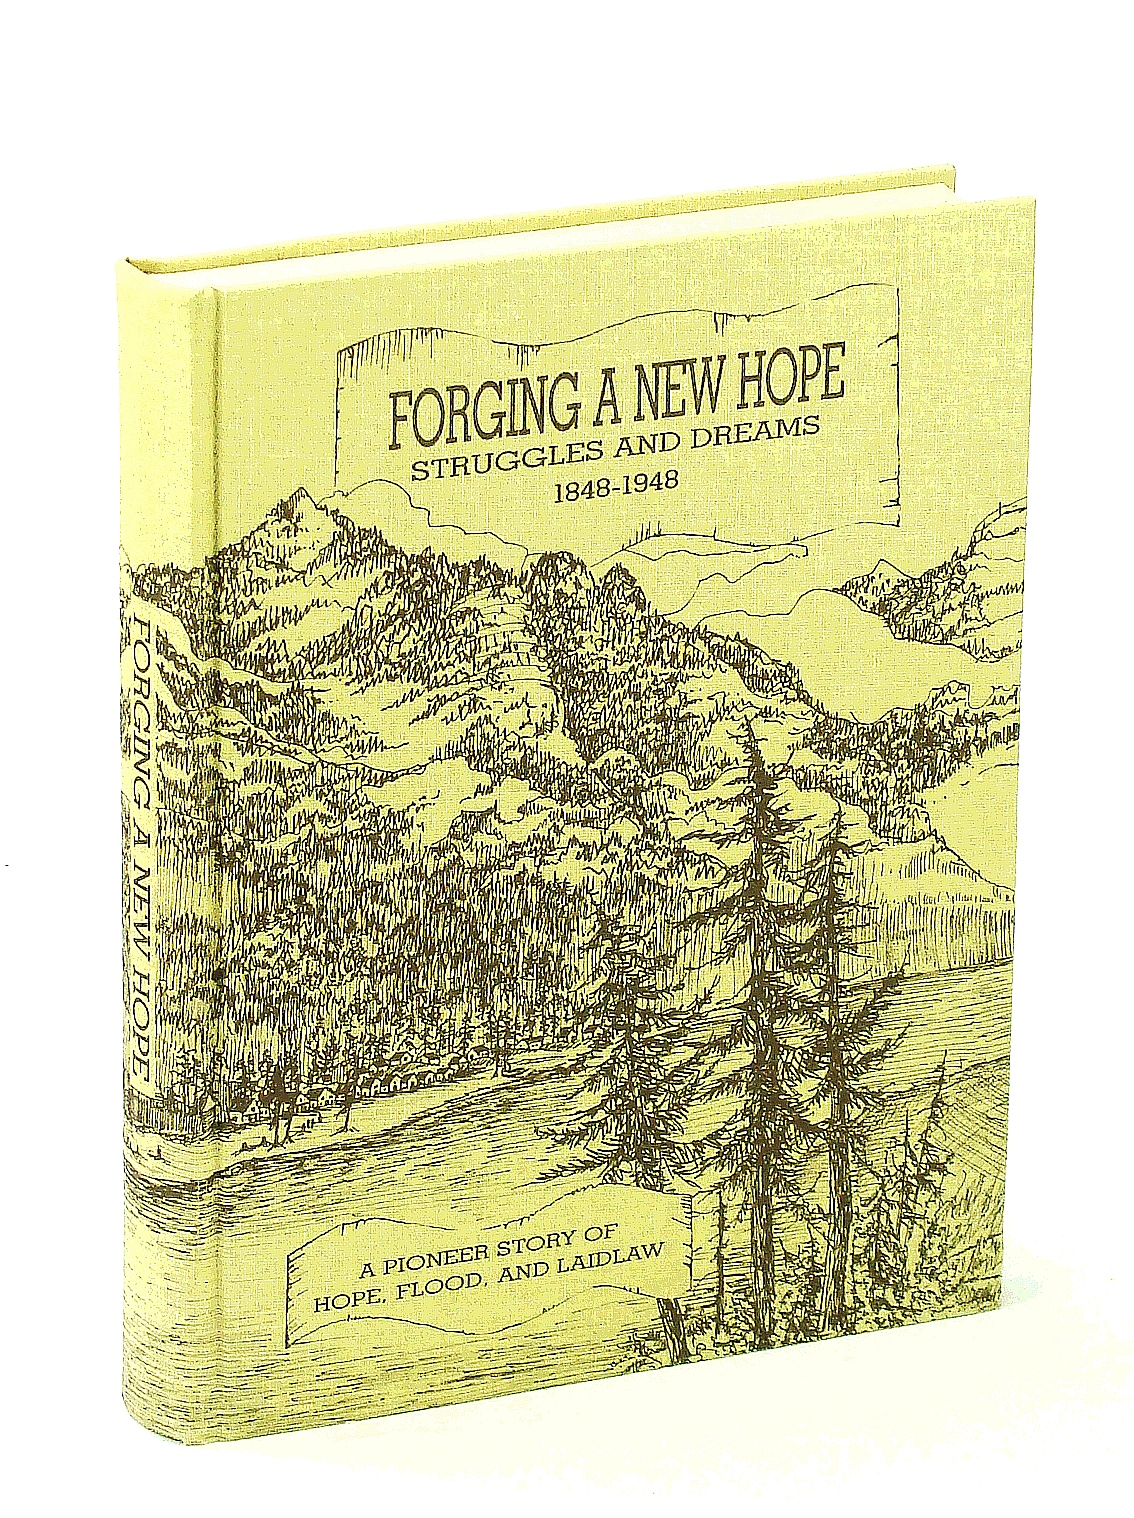 Image for Forging a New Hope: Struggles and Dreams 1848-1948- A Pioneer Story of Hope, Flood and Laidlaw